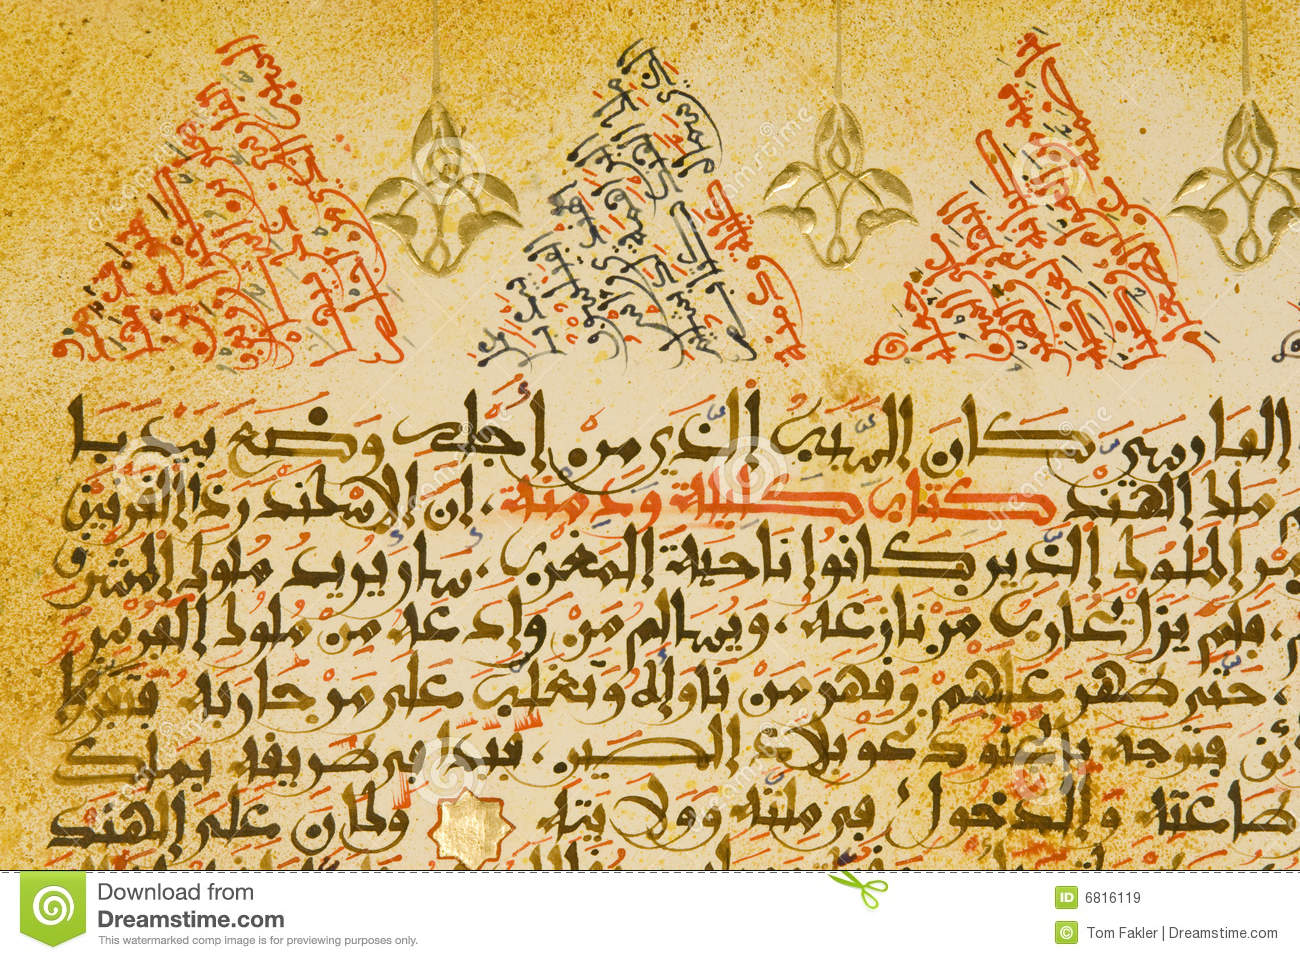 Arabic Calligraphy Manuscript On Paper Stock Image - Image of black